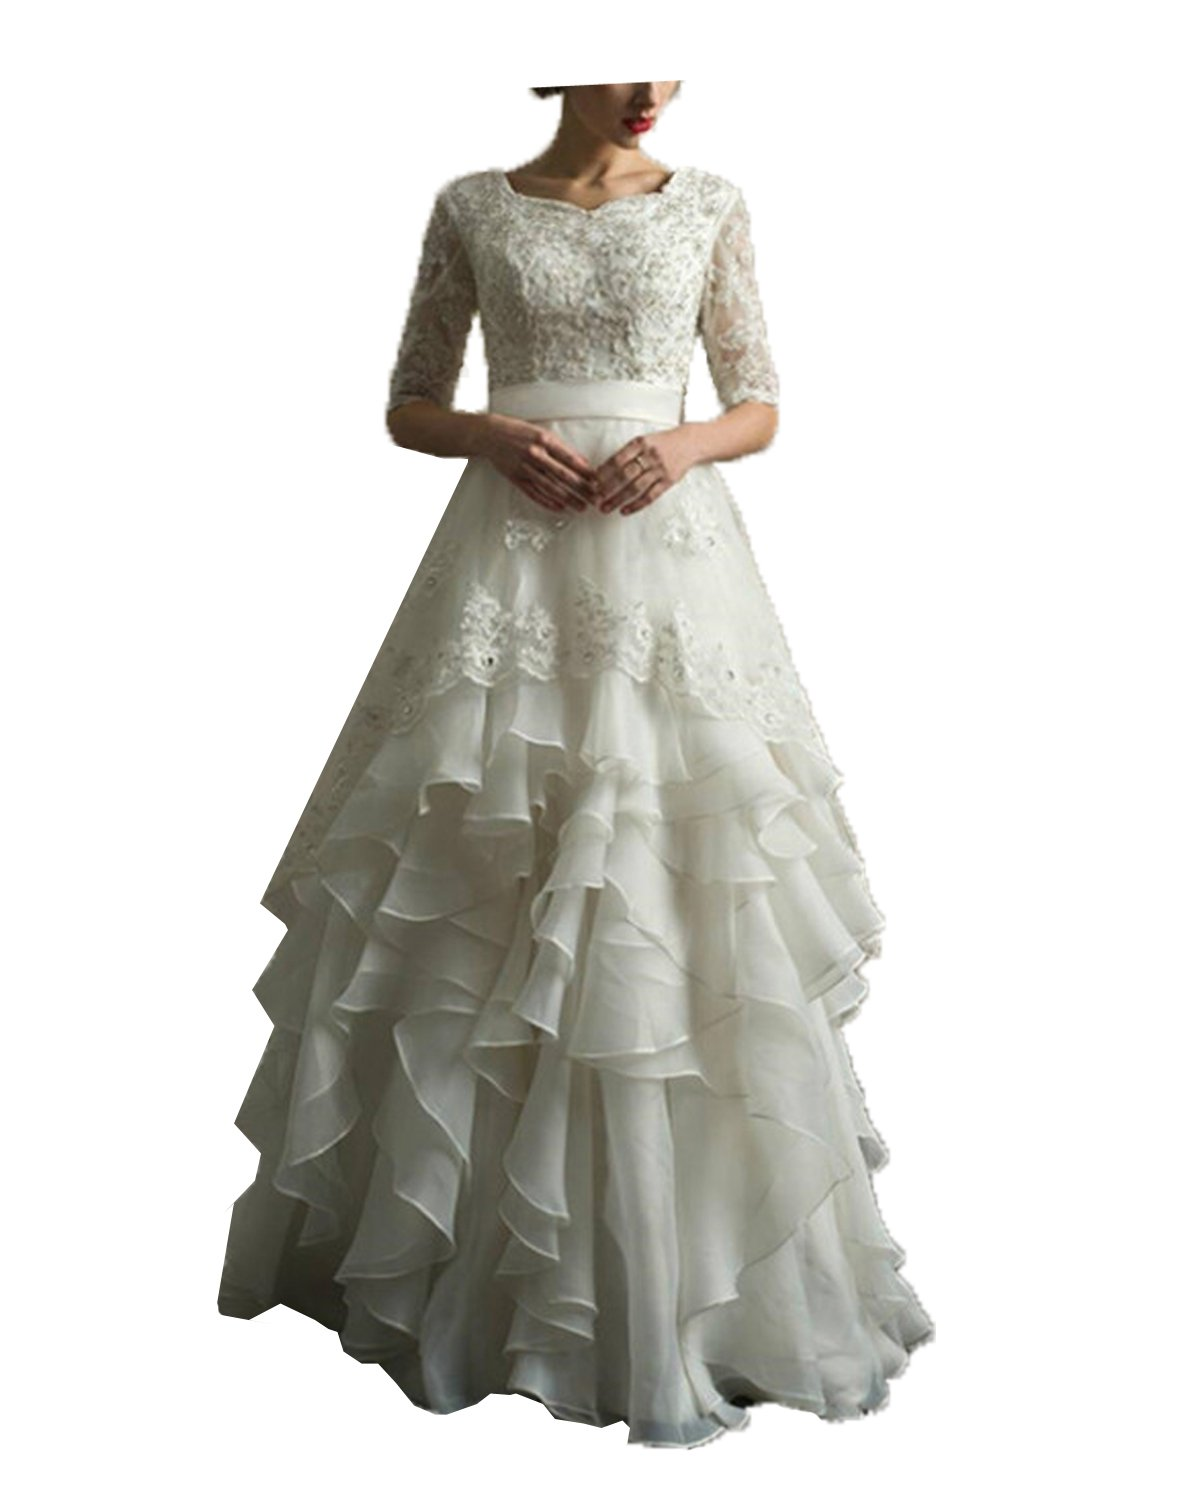 Prom Queen Women's Lace Vintage Wedding Dress Beaded A Line Beach Wedding Dresses US16 Ivory